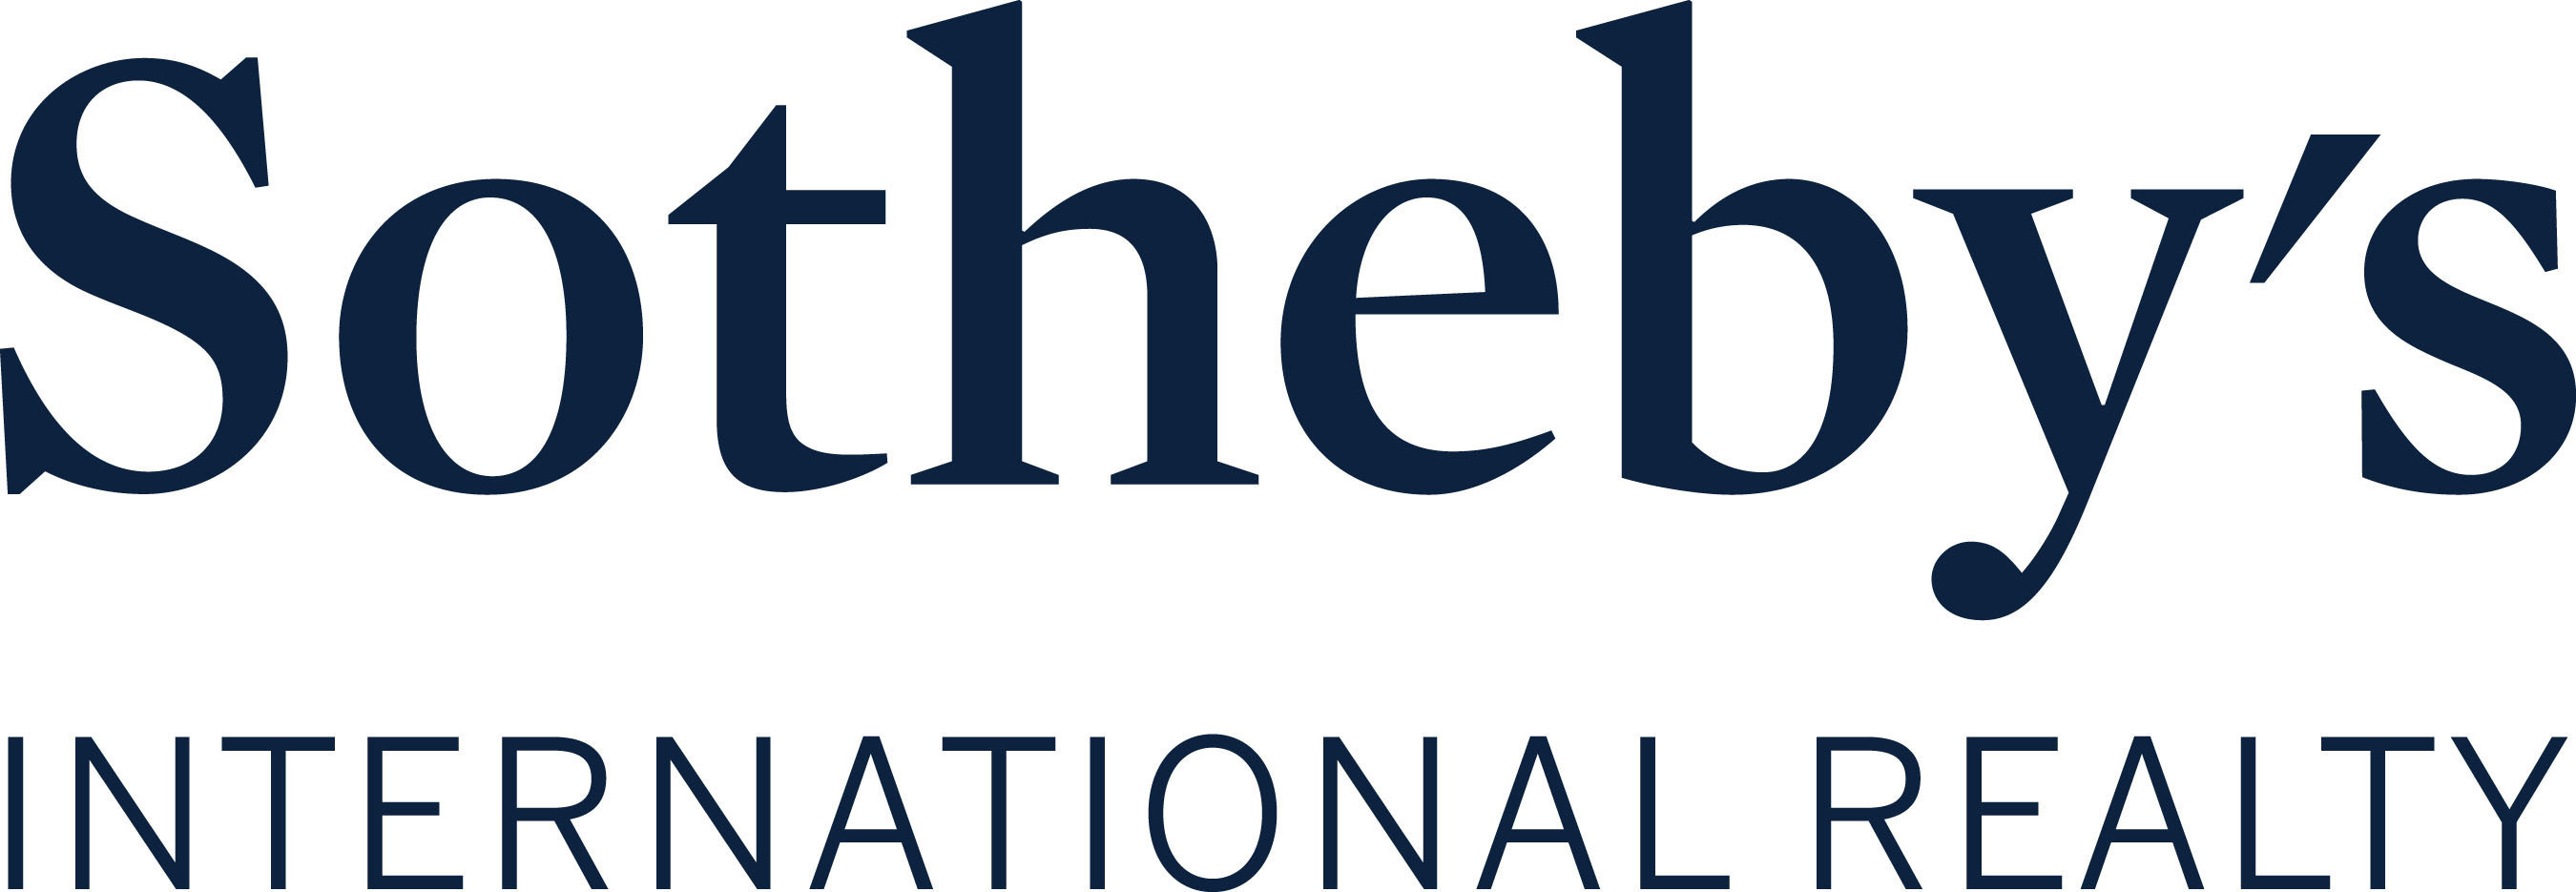 Sotheby's International Realty Brand Welcomes Washington Firm